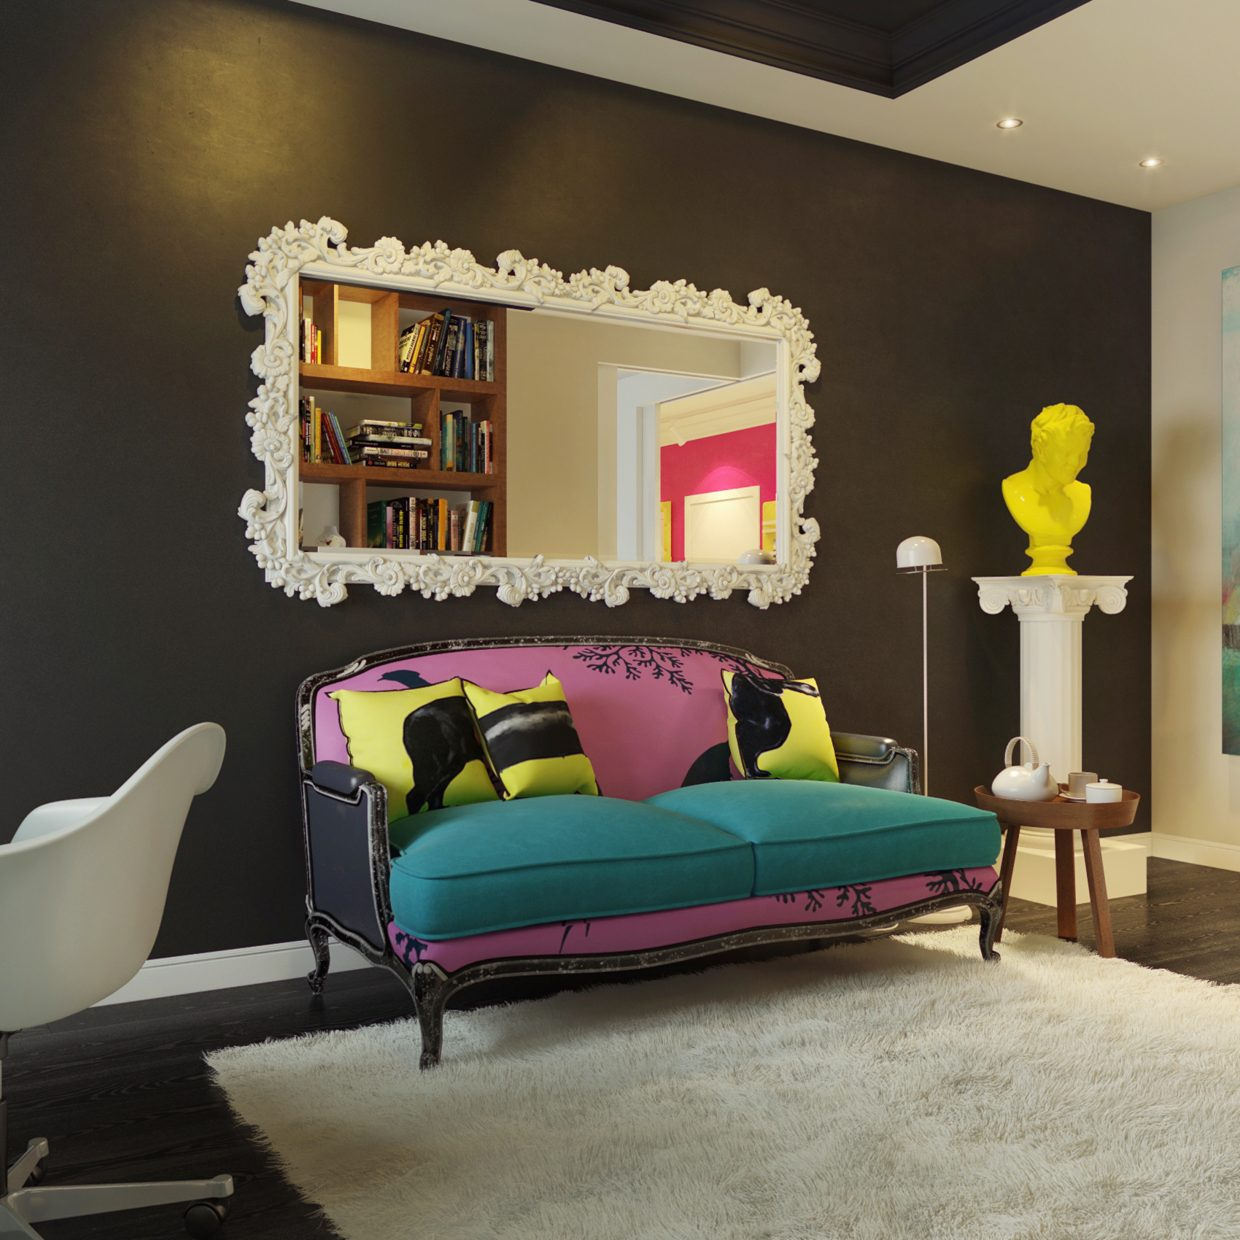 modern pop art style apartment - Interior Design On Wall At Home